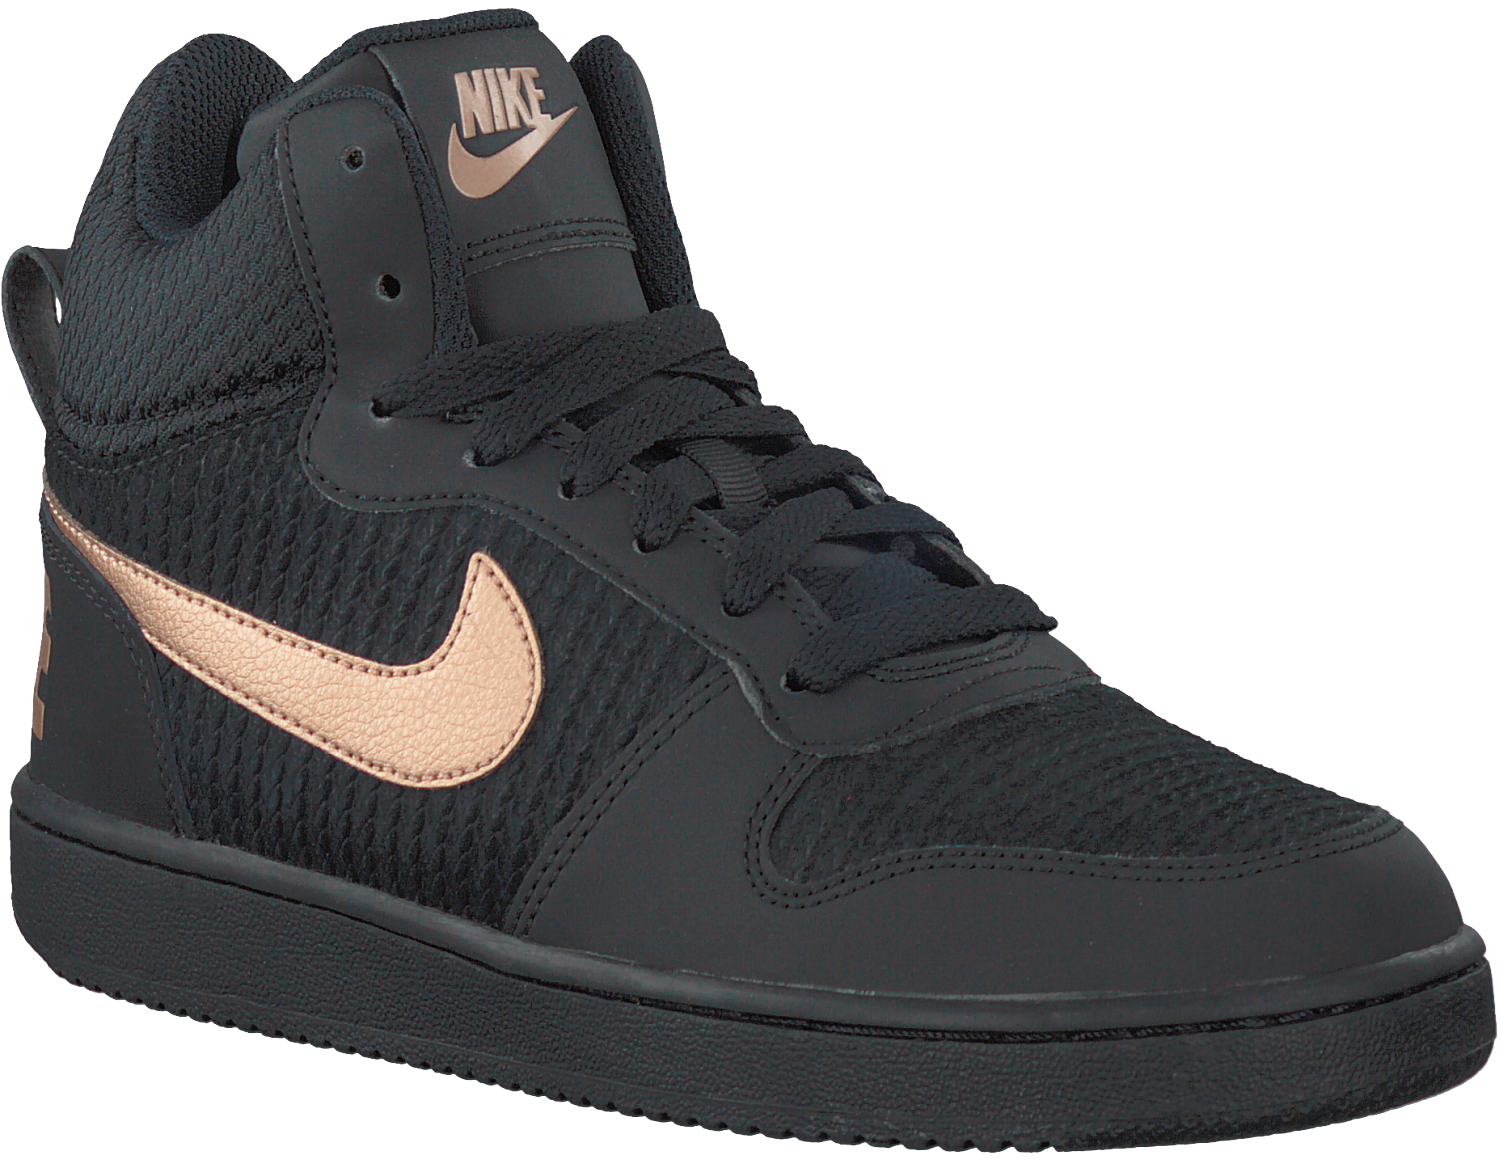 Nike Prem Mid Sneakers Dames Zwarte nl Omoda Court Borough SdCwXqa